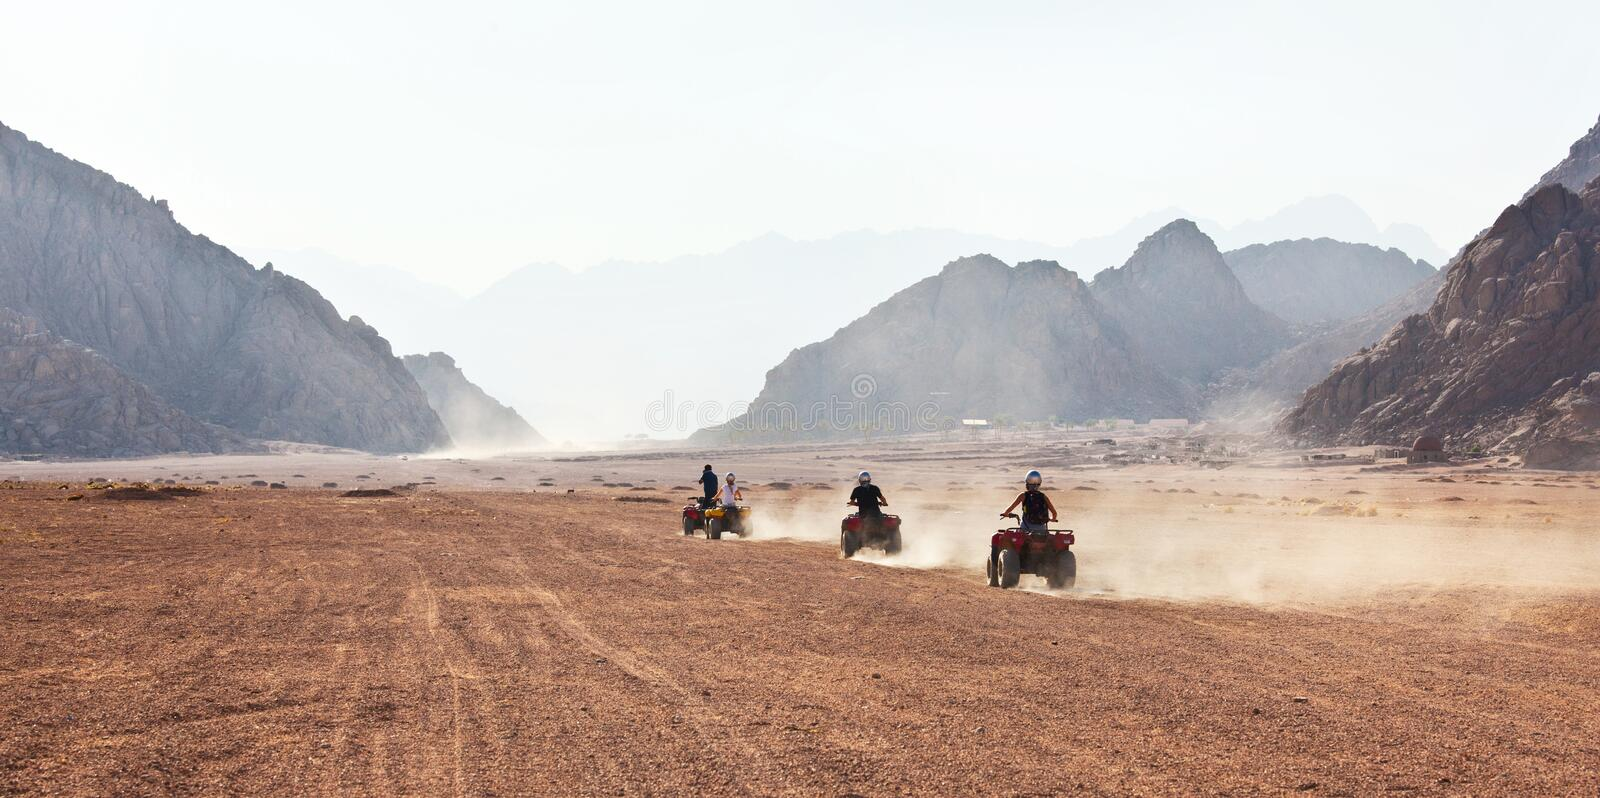 High speed race of several people riding quad bikes in desert royalty free stock image